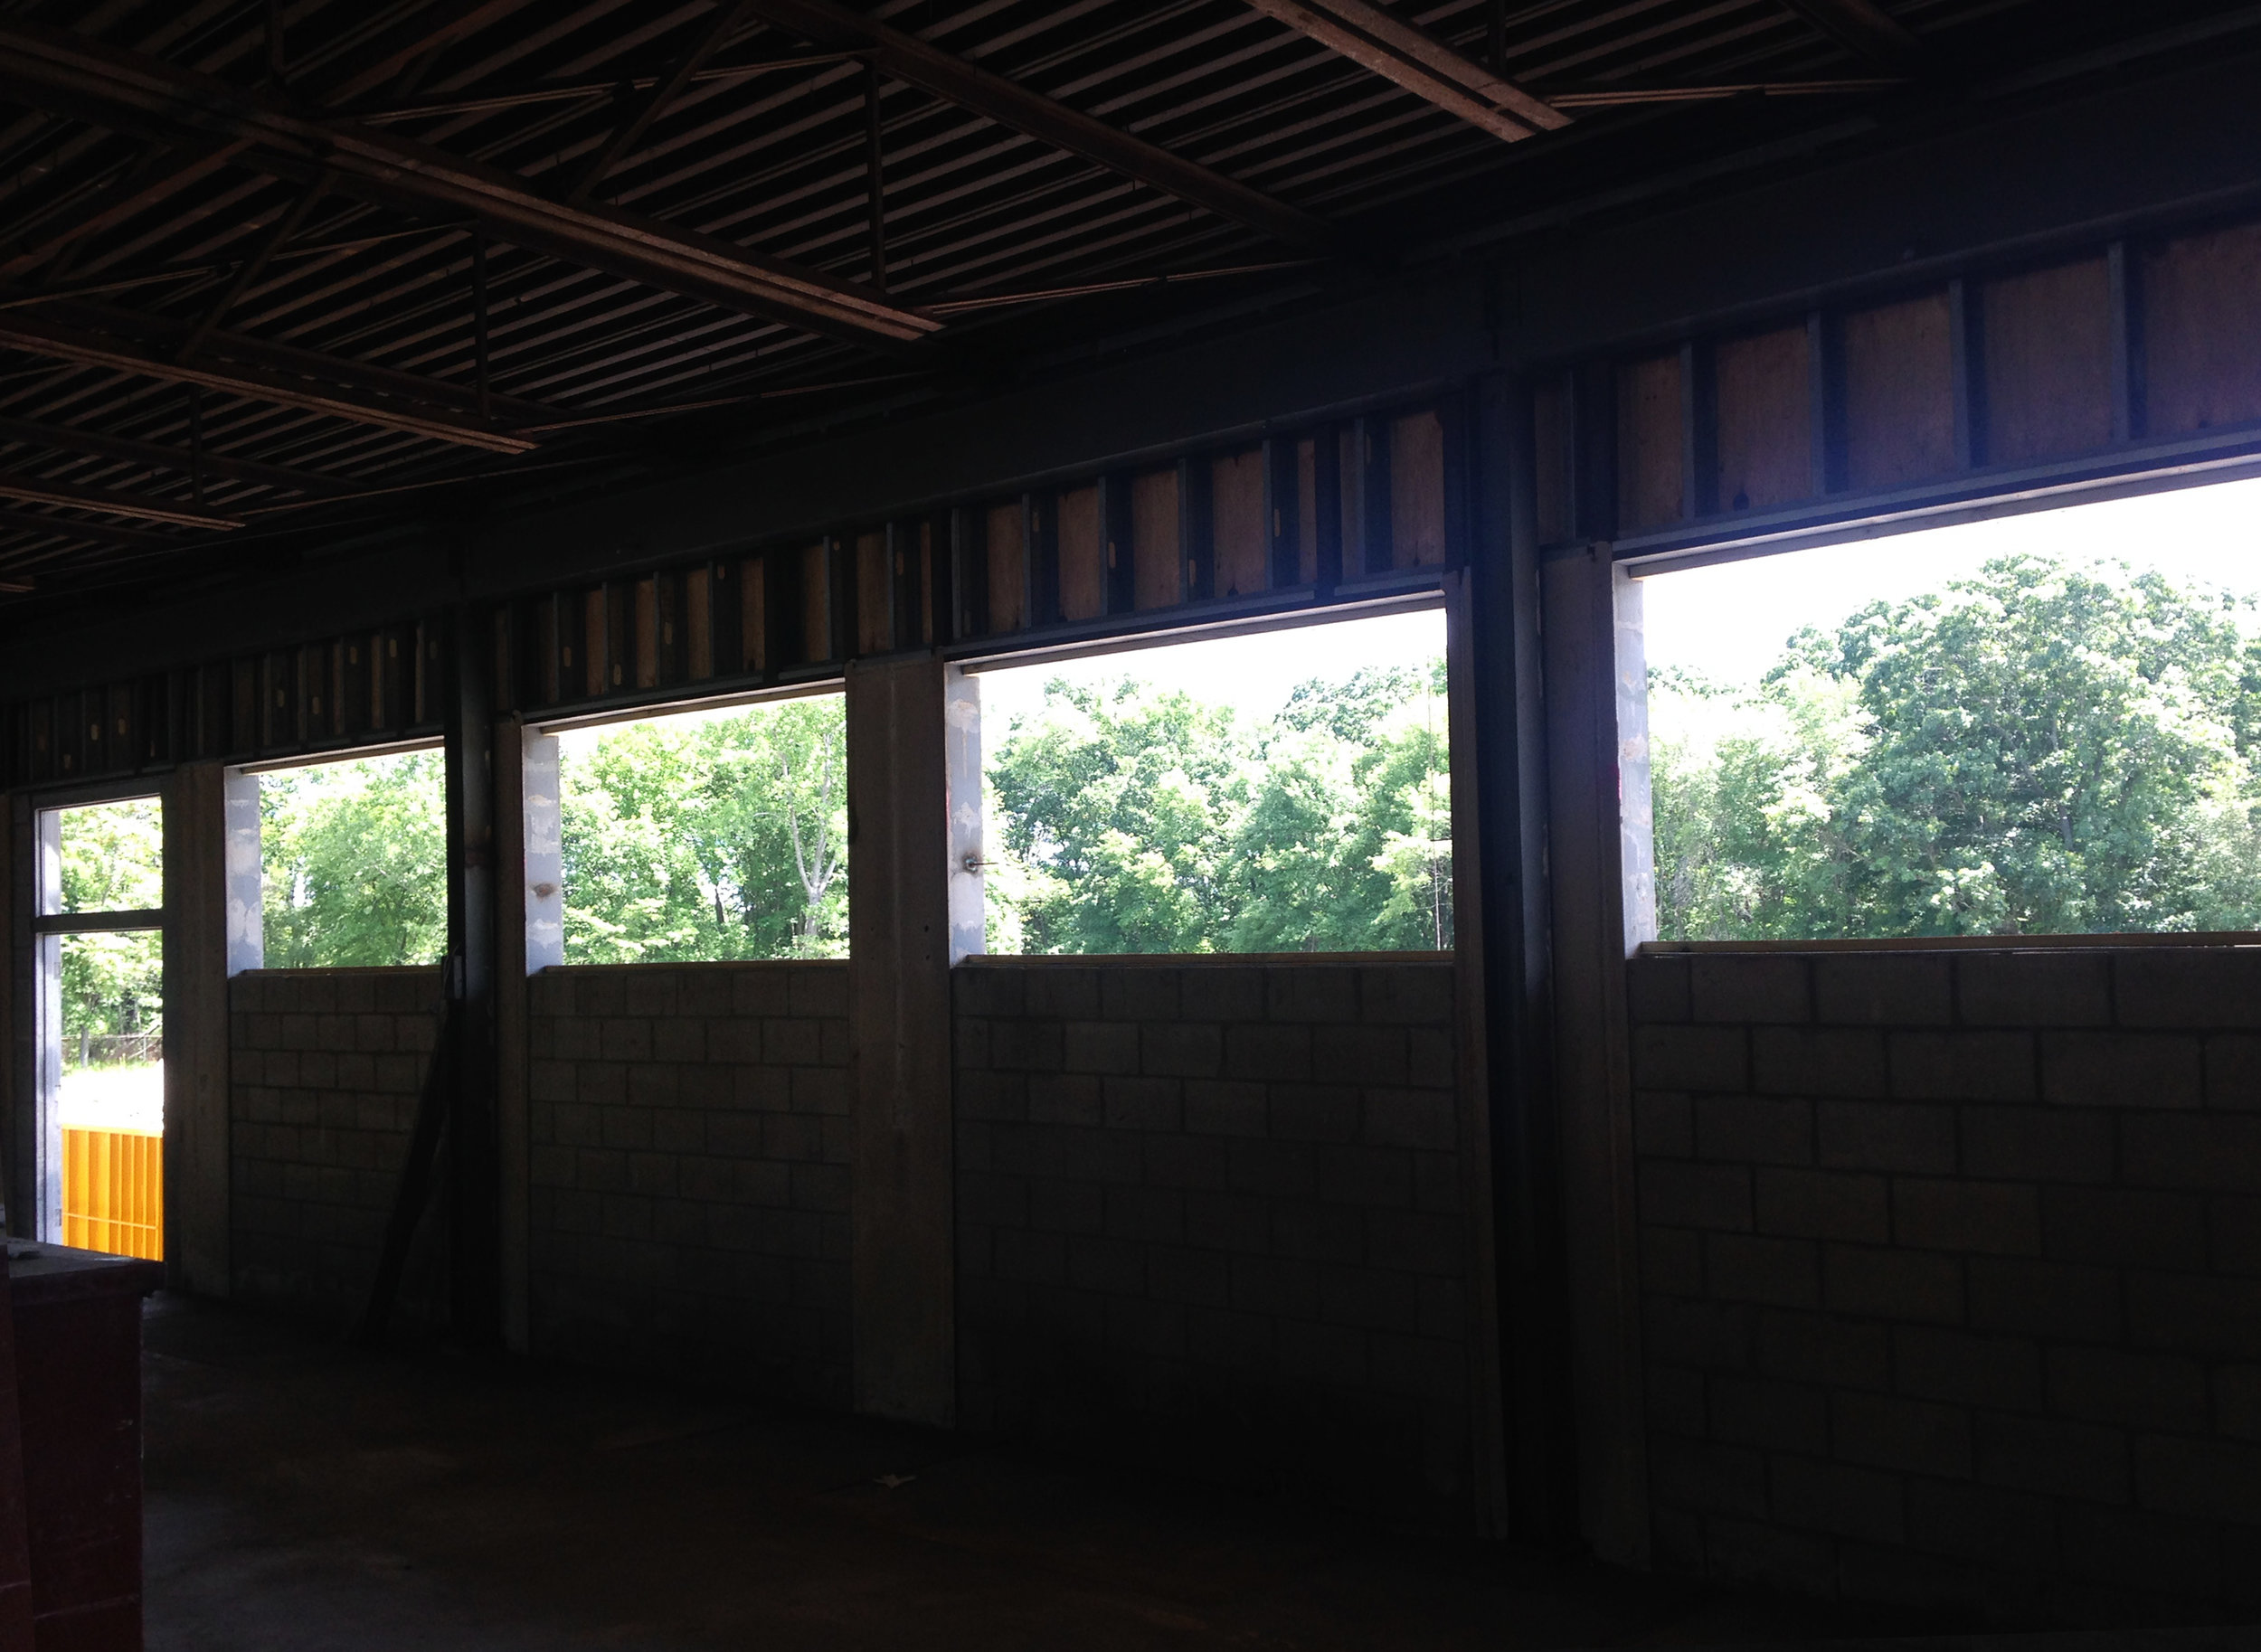 Views out onto the tree canopies from the interior, before windows were installed